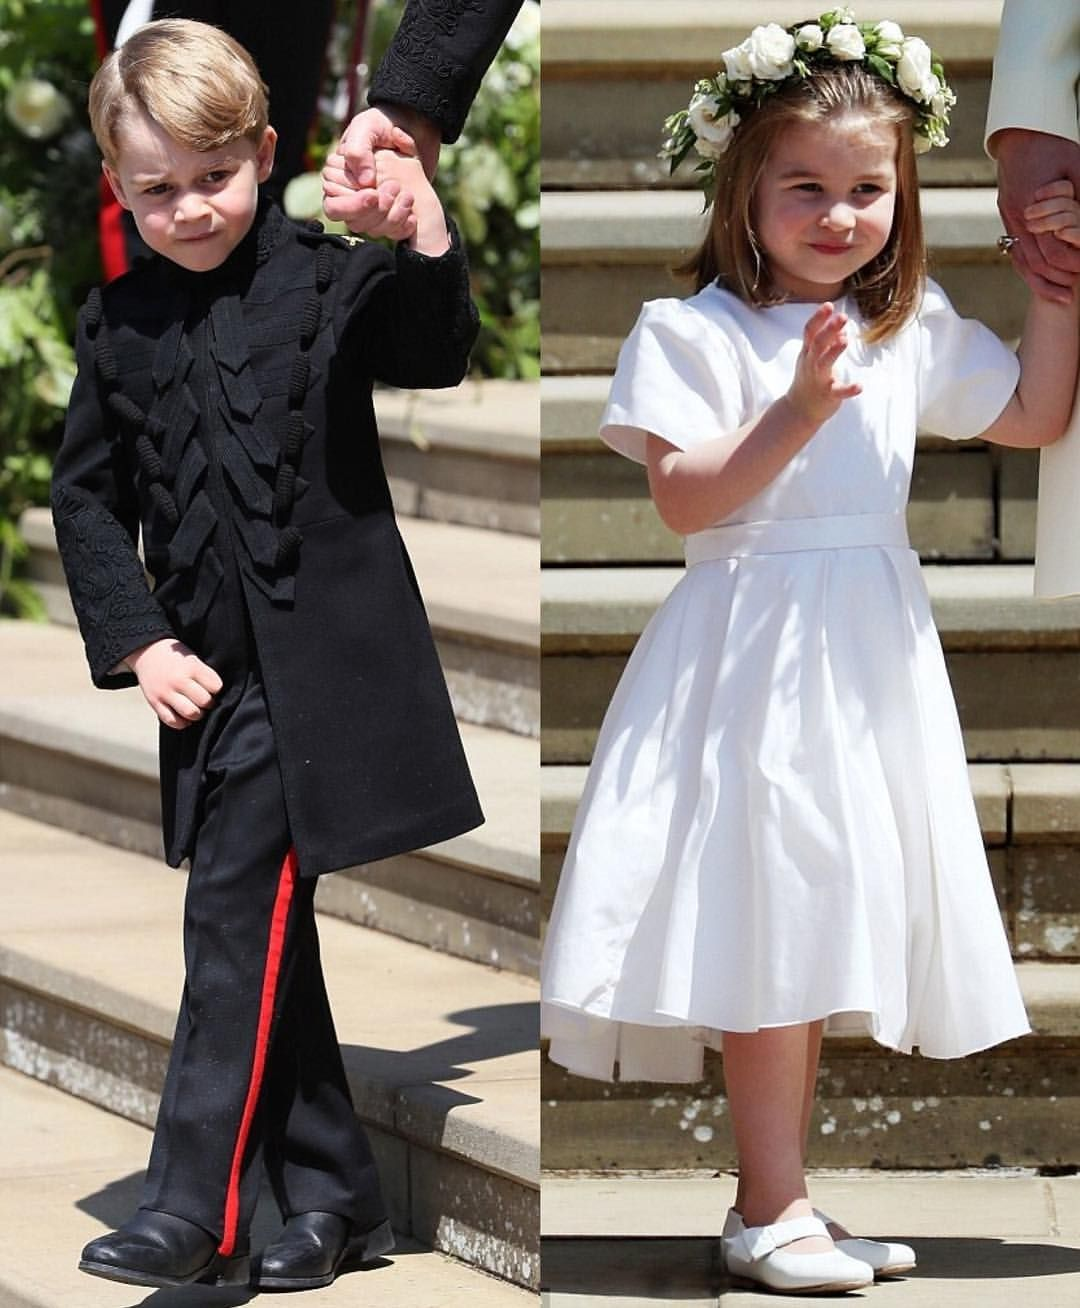 Prince George And Princess Charlotte Participate In Prince